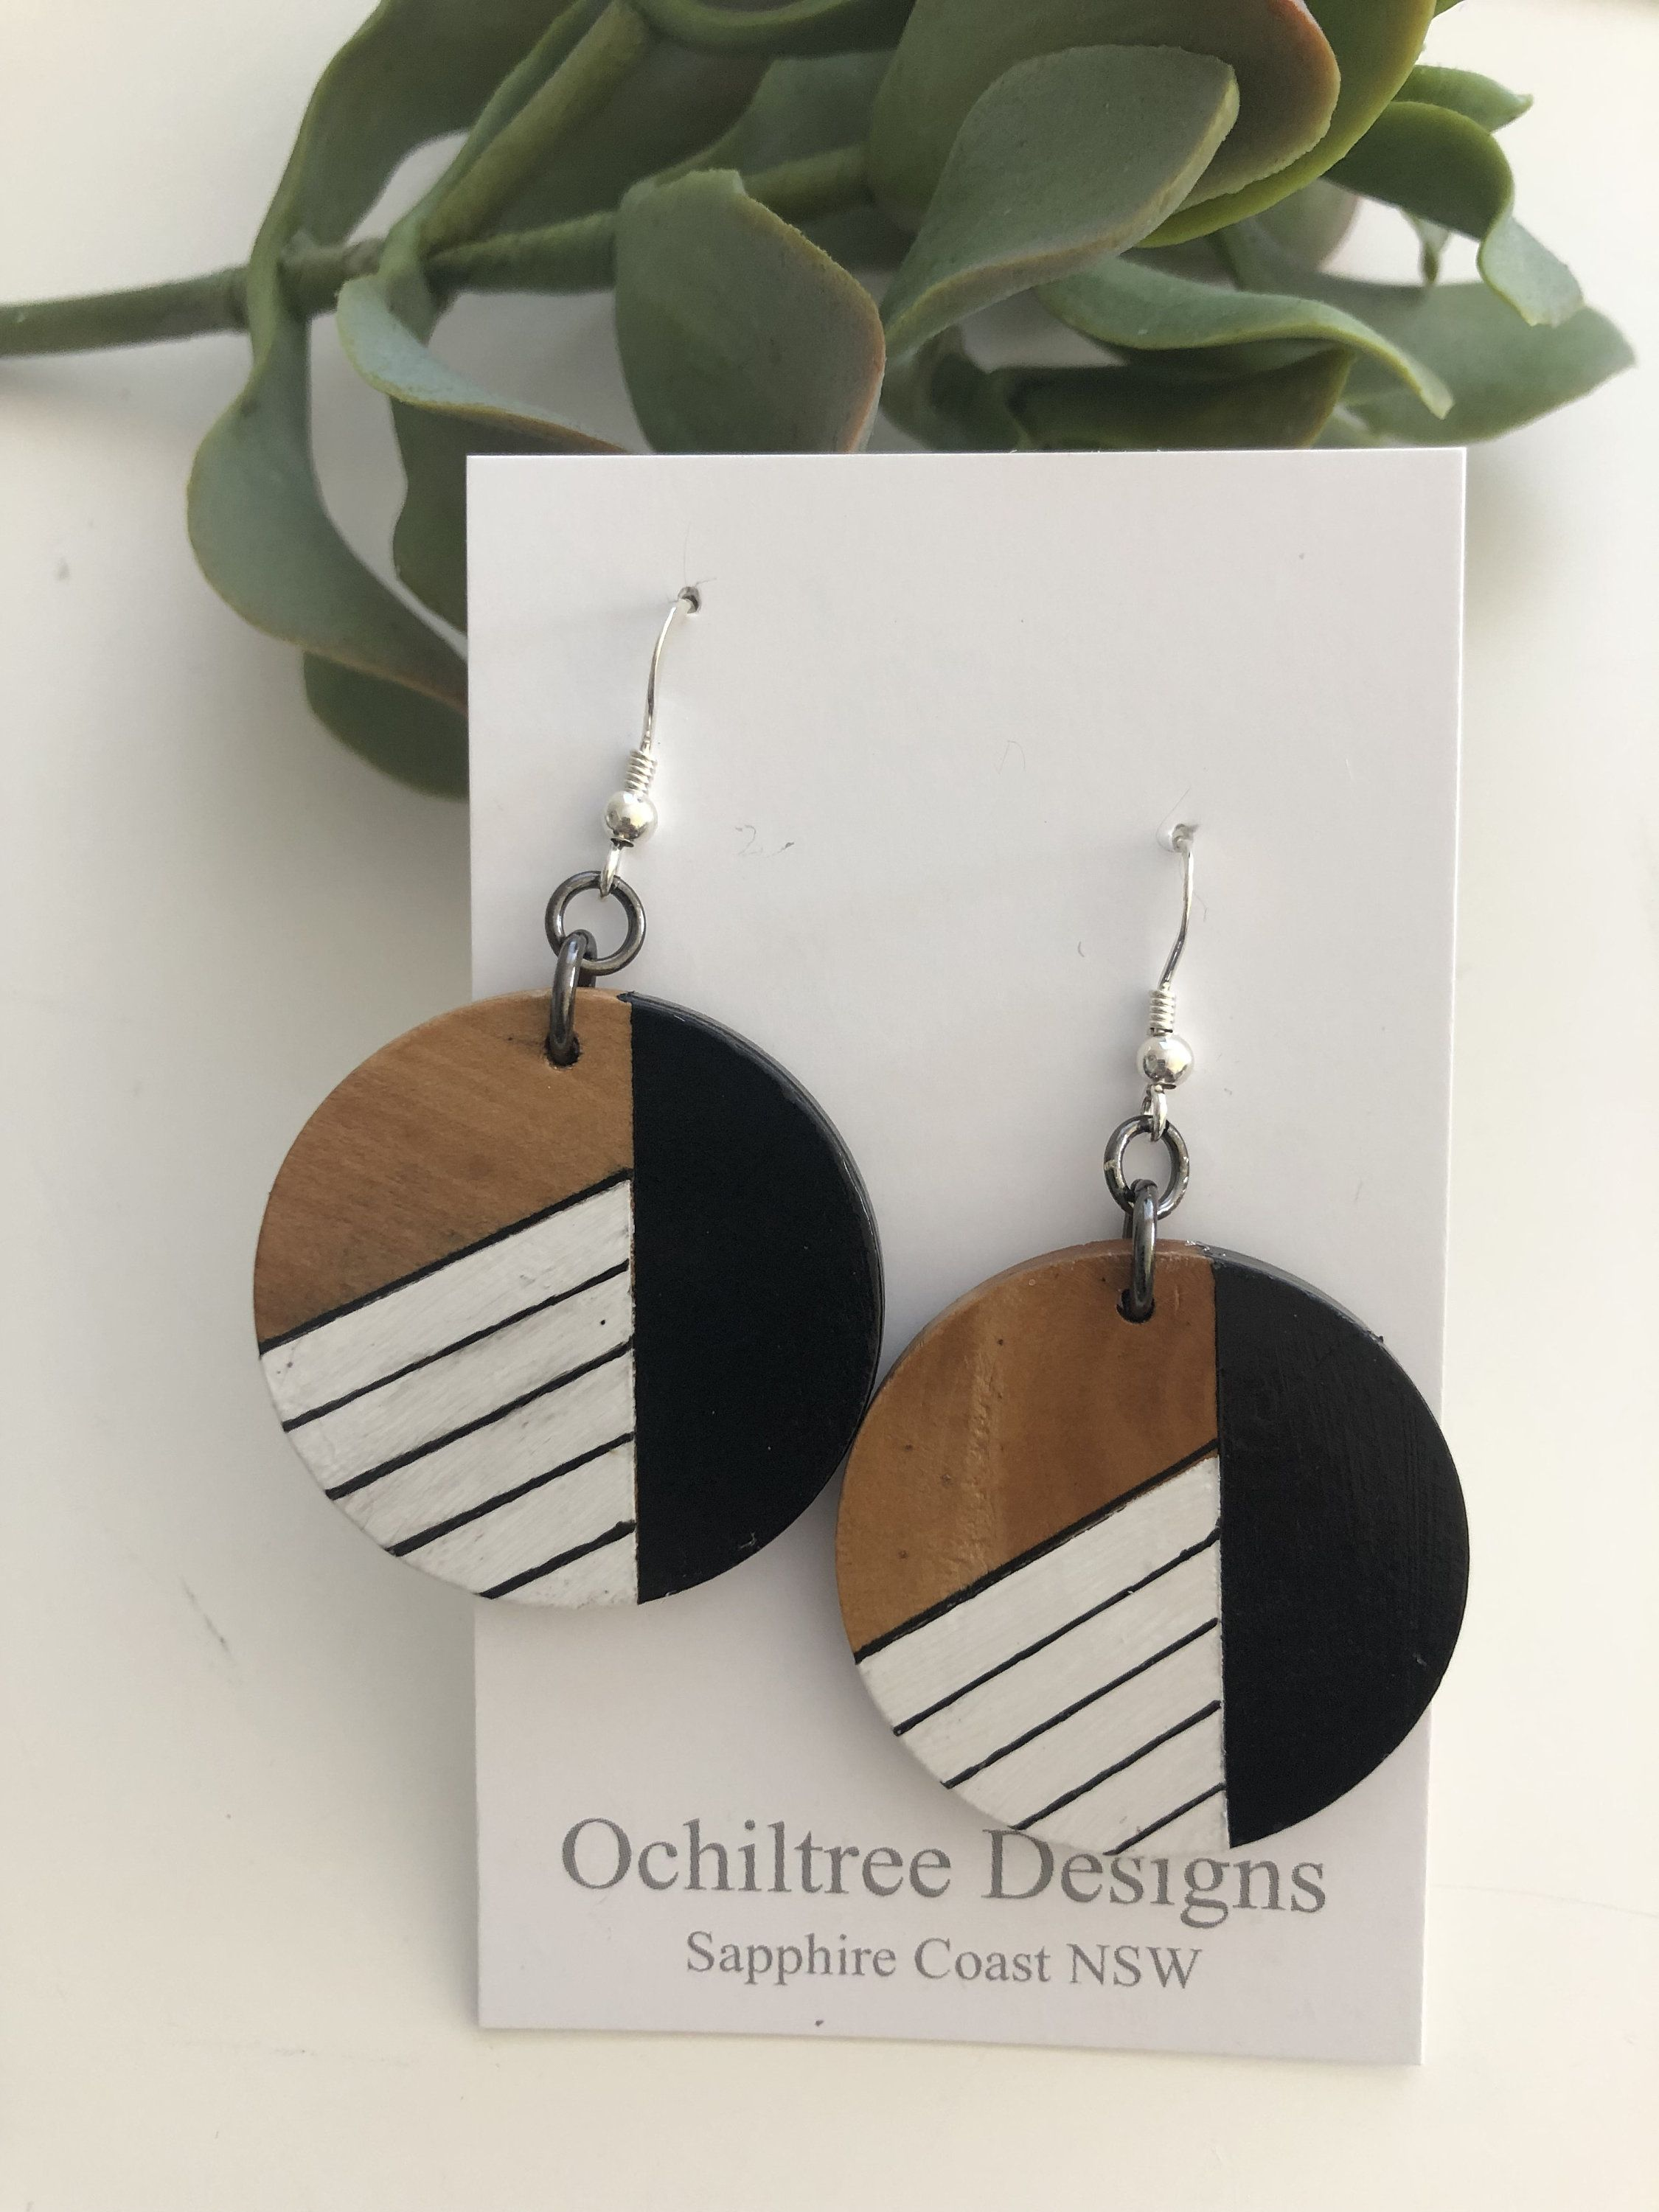 Hand Painted Wooden Earrings Etsy Wooden Earrings Hand Painted Earrings Diy Leather Earrings